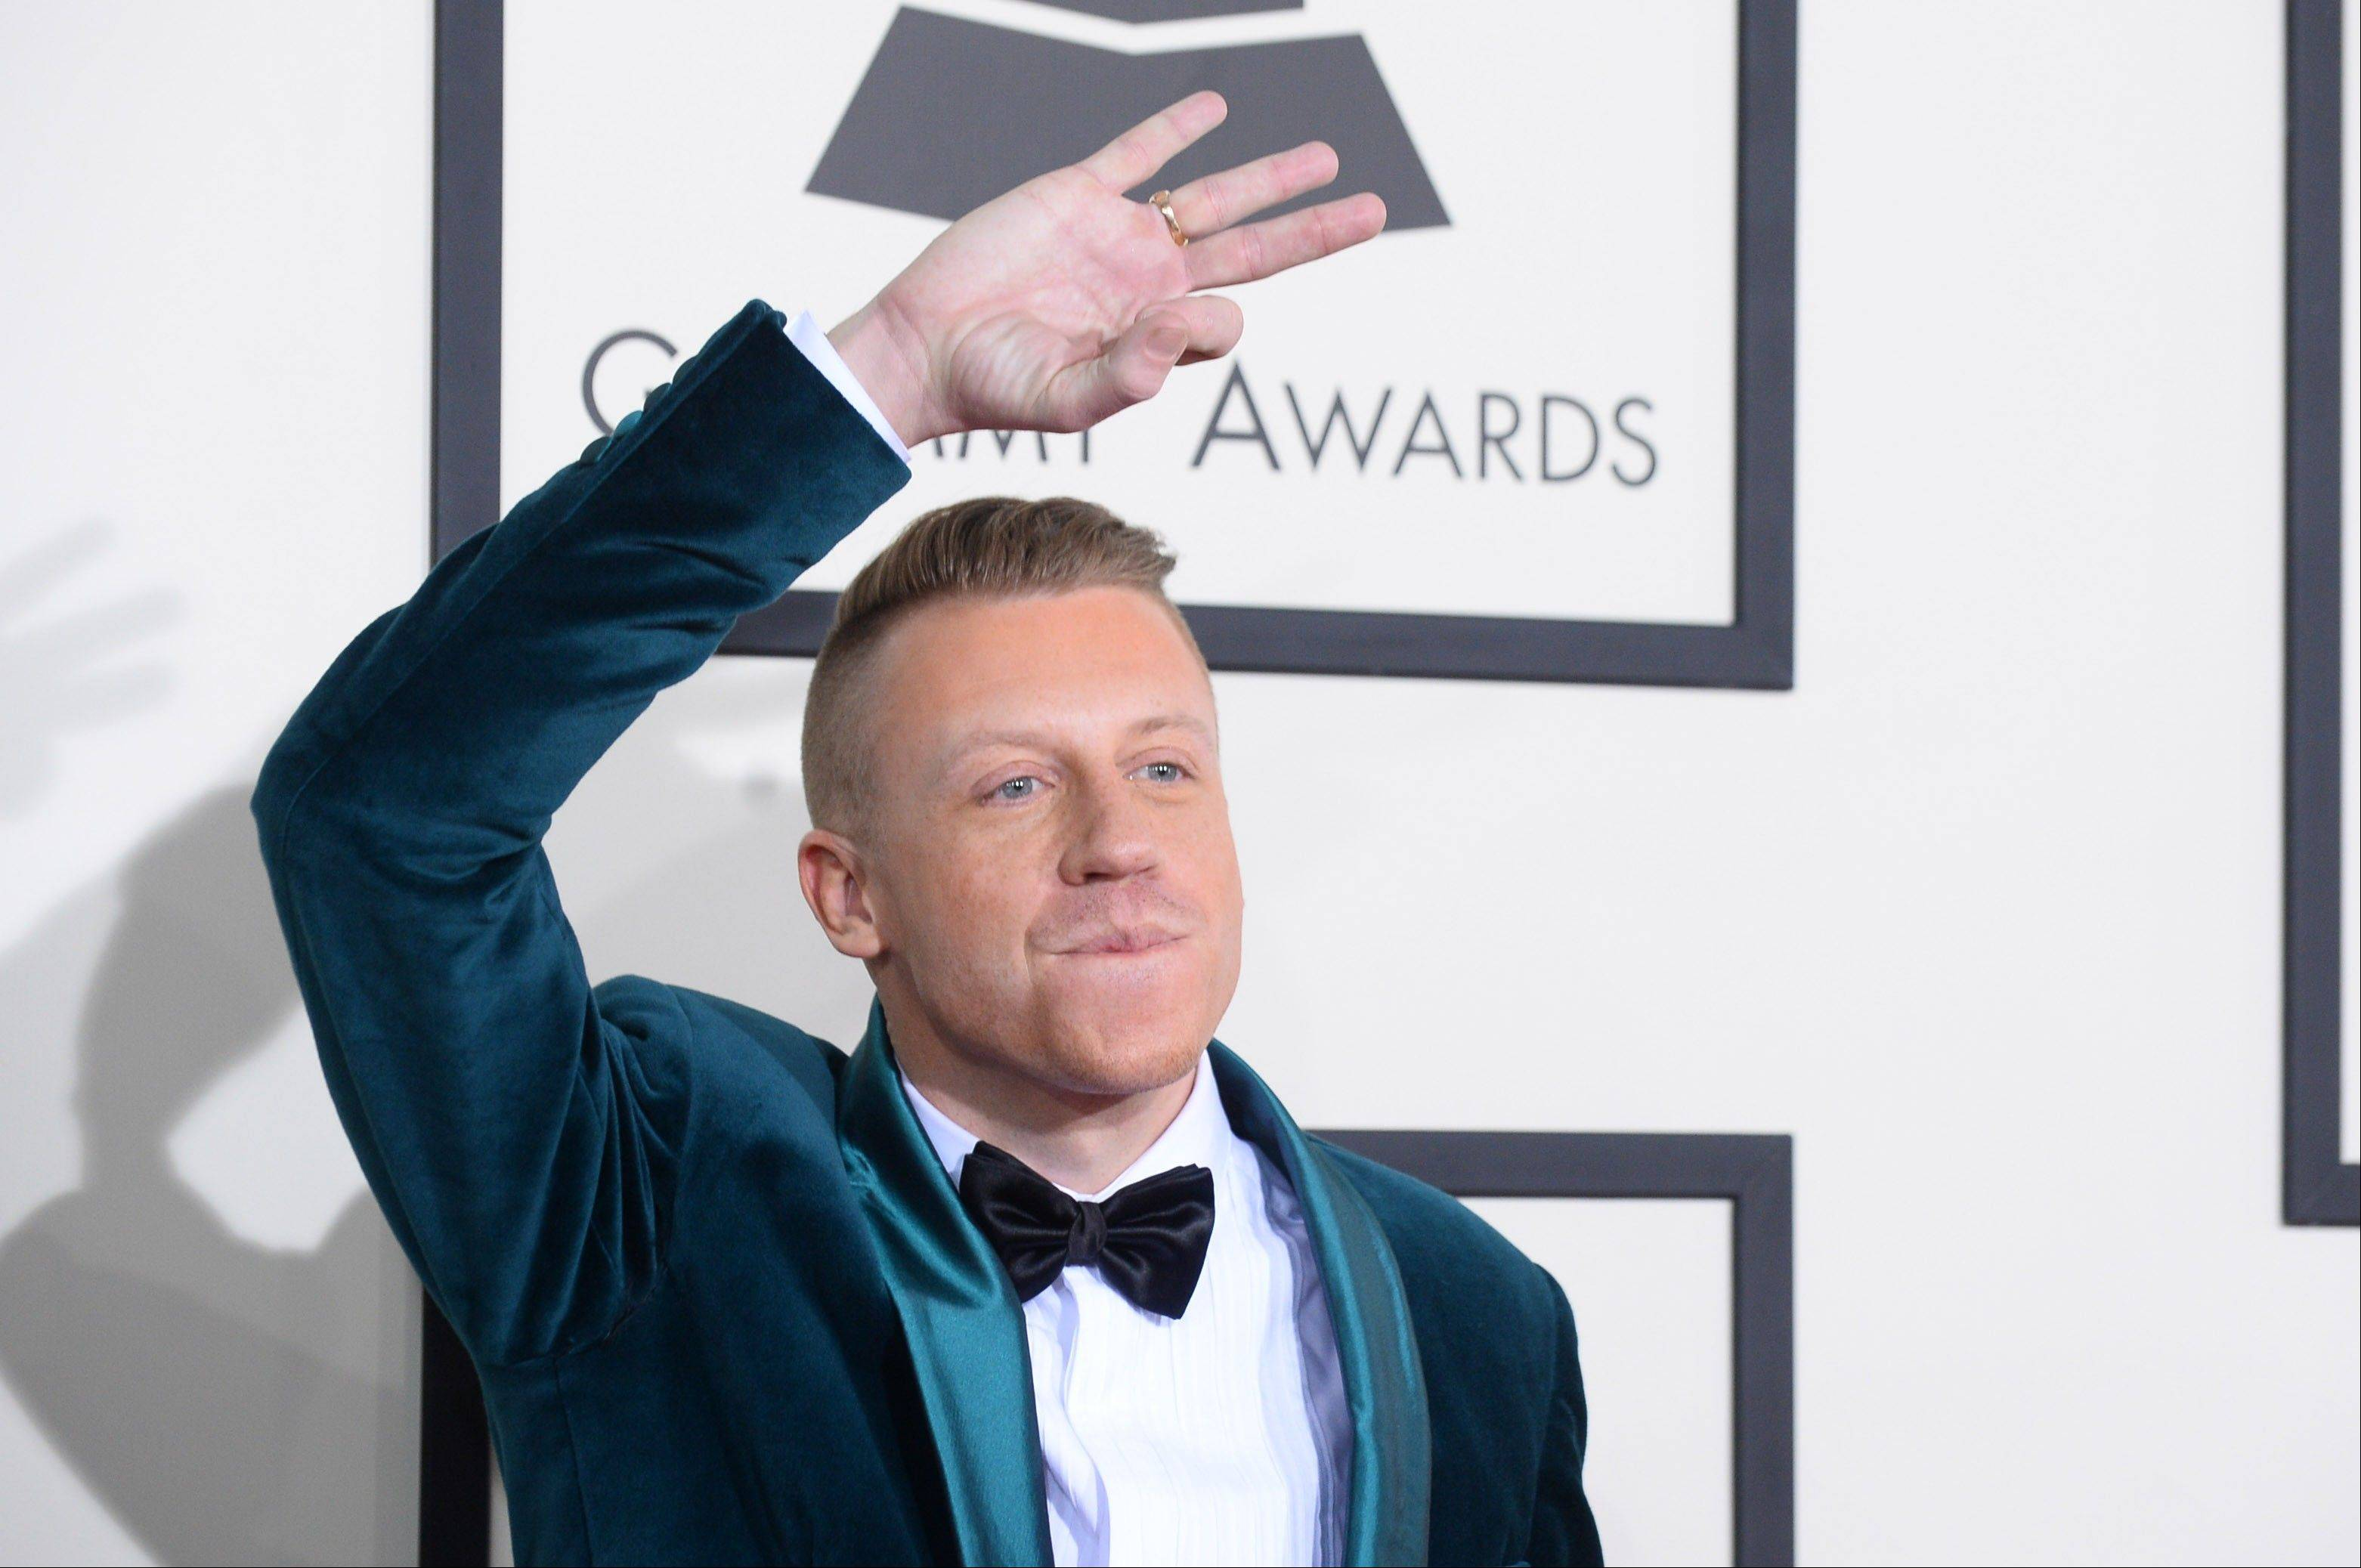 Macklemore arrives at the 56th annual GRAMMY Awards at Staples Center on Sunday.